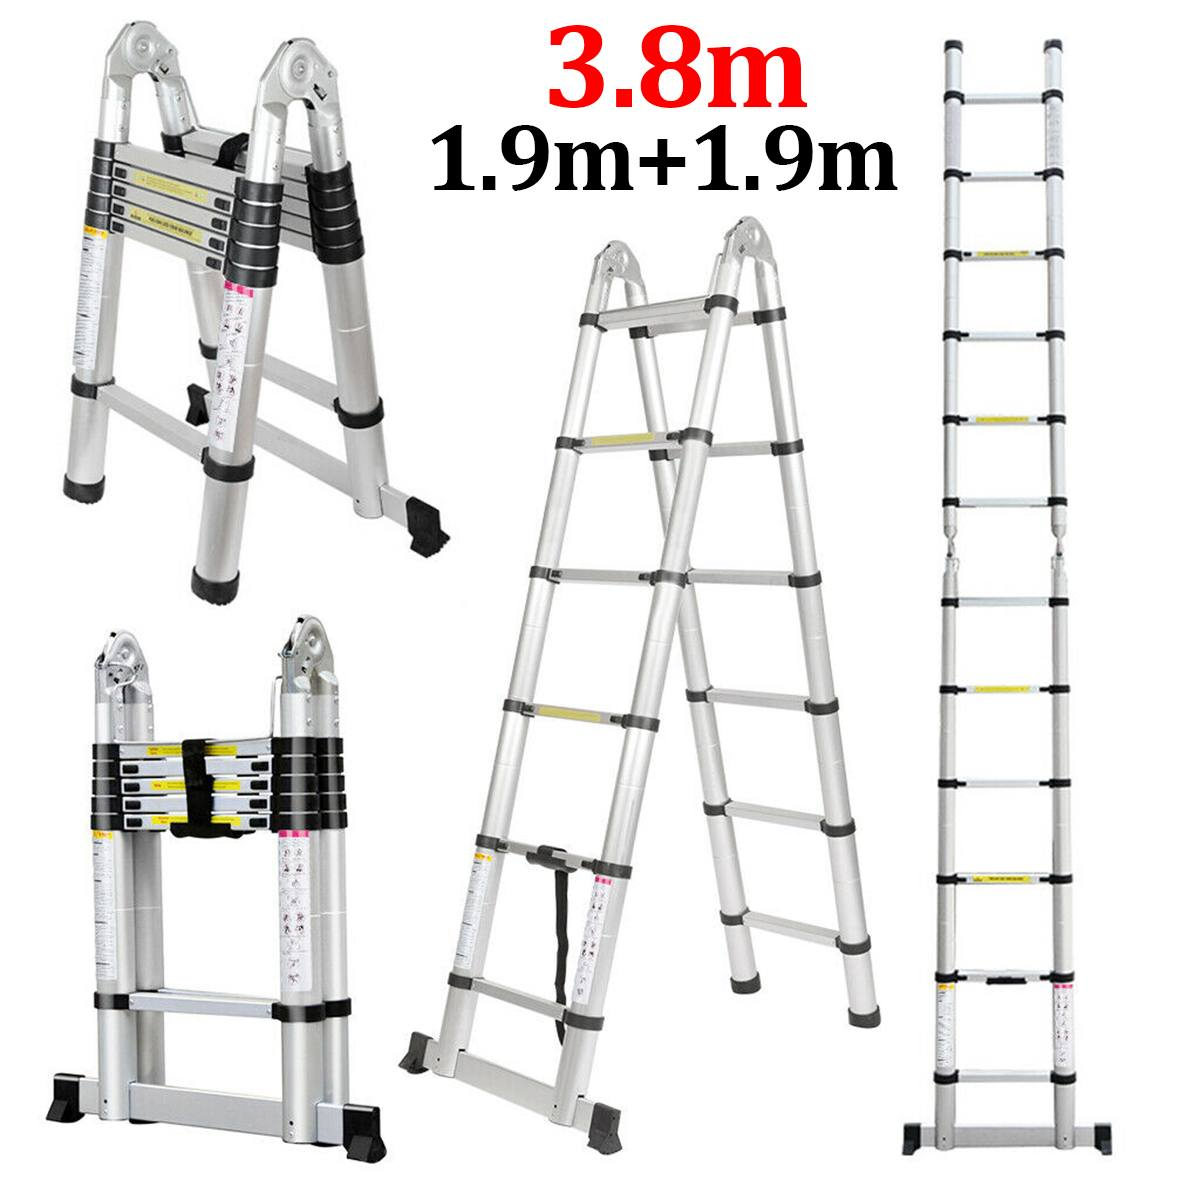 New 1.9m+1.9m 12.5FT Ladder Telescopic Folding Ladder Dual-Use Herringbone Ladders Single Extension Alloy Aluminium Tools Home